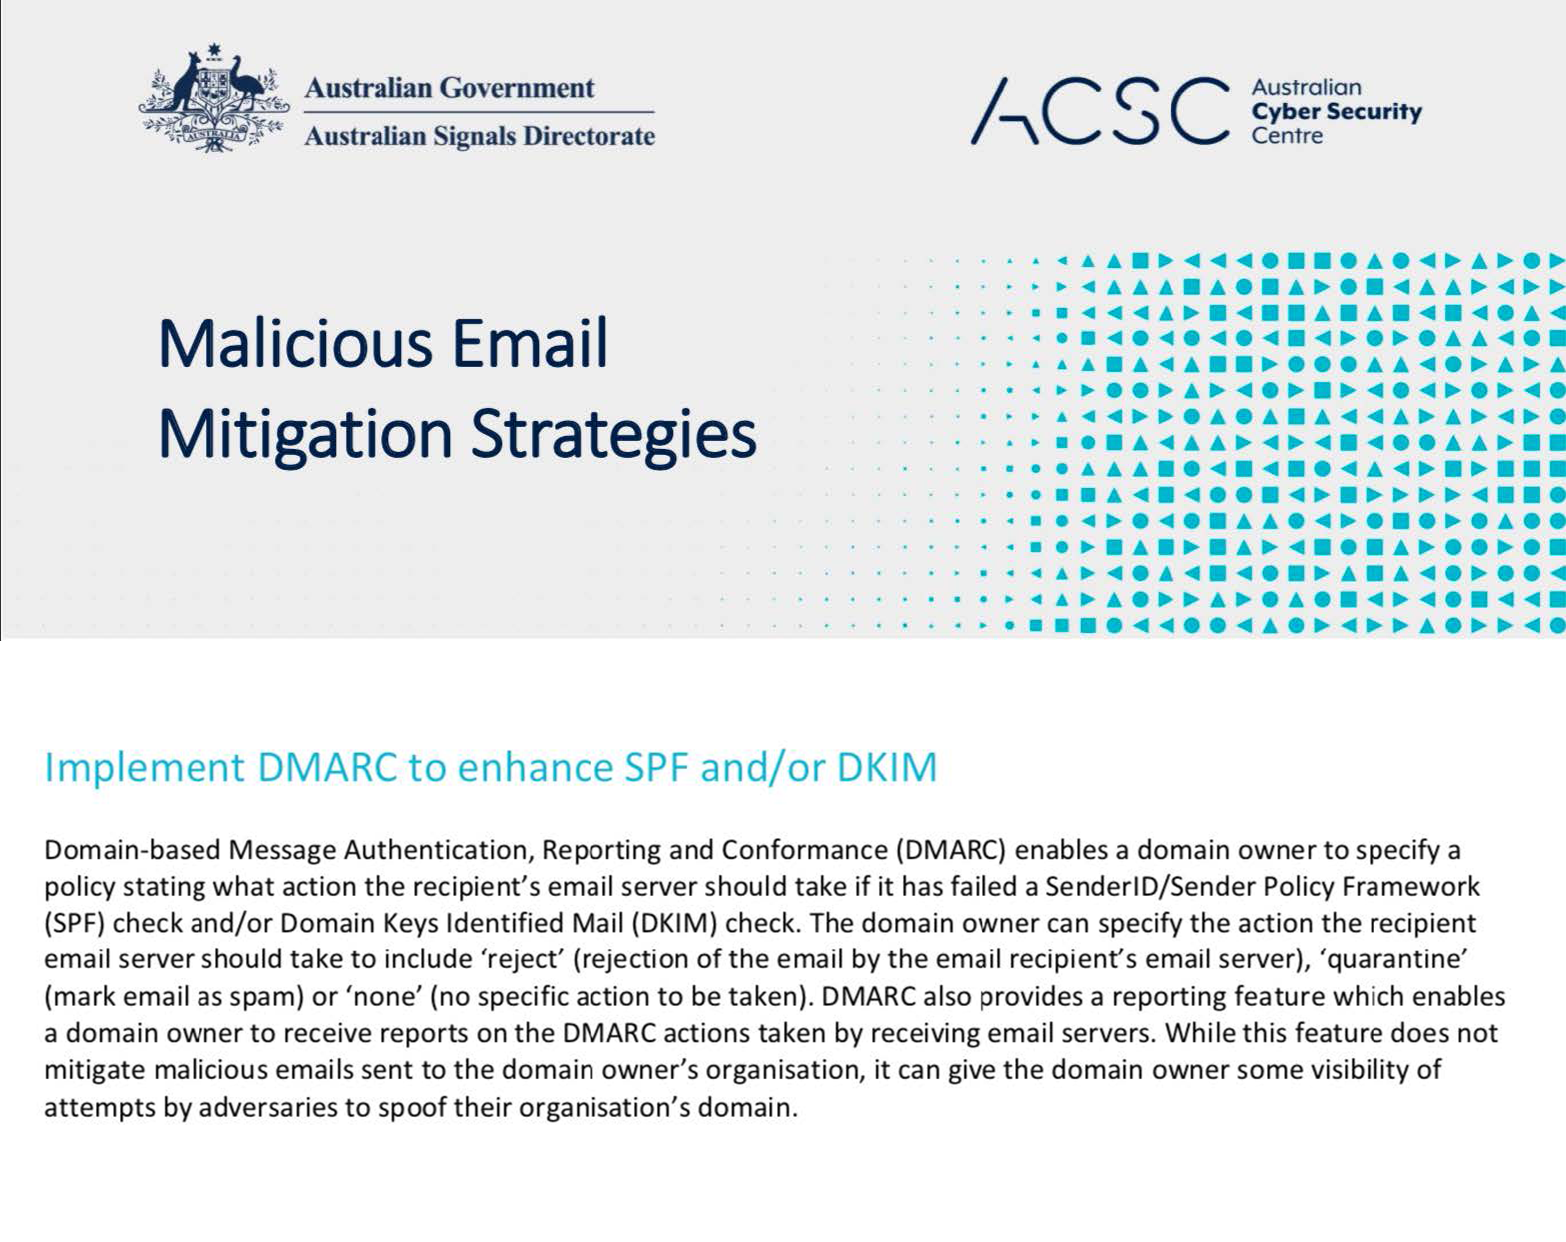 slide 4 - 2 image combined-Malicious-e-mail.png